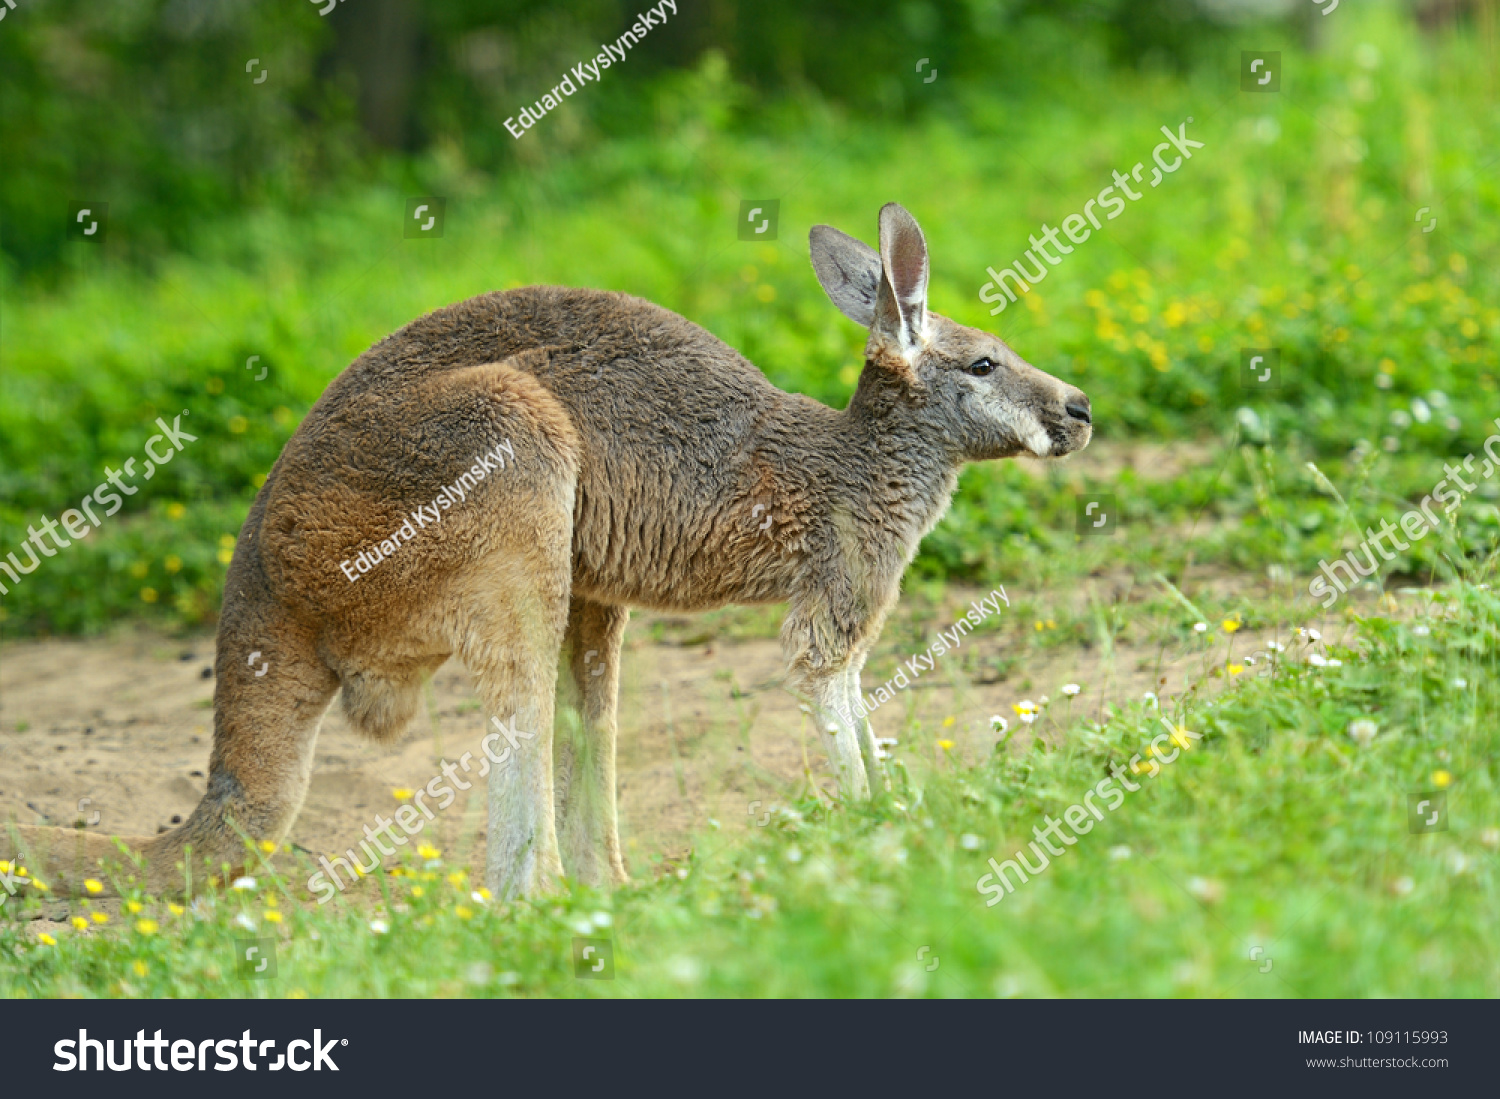 Kangaroo Natural Habitat A Kangaroo Is In A Nat...